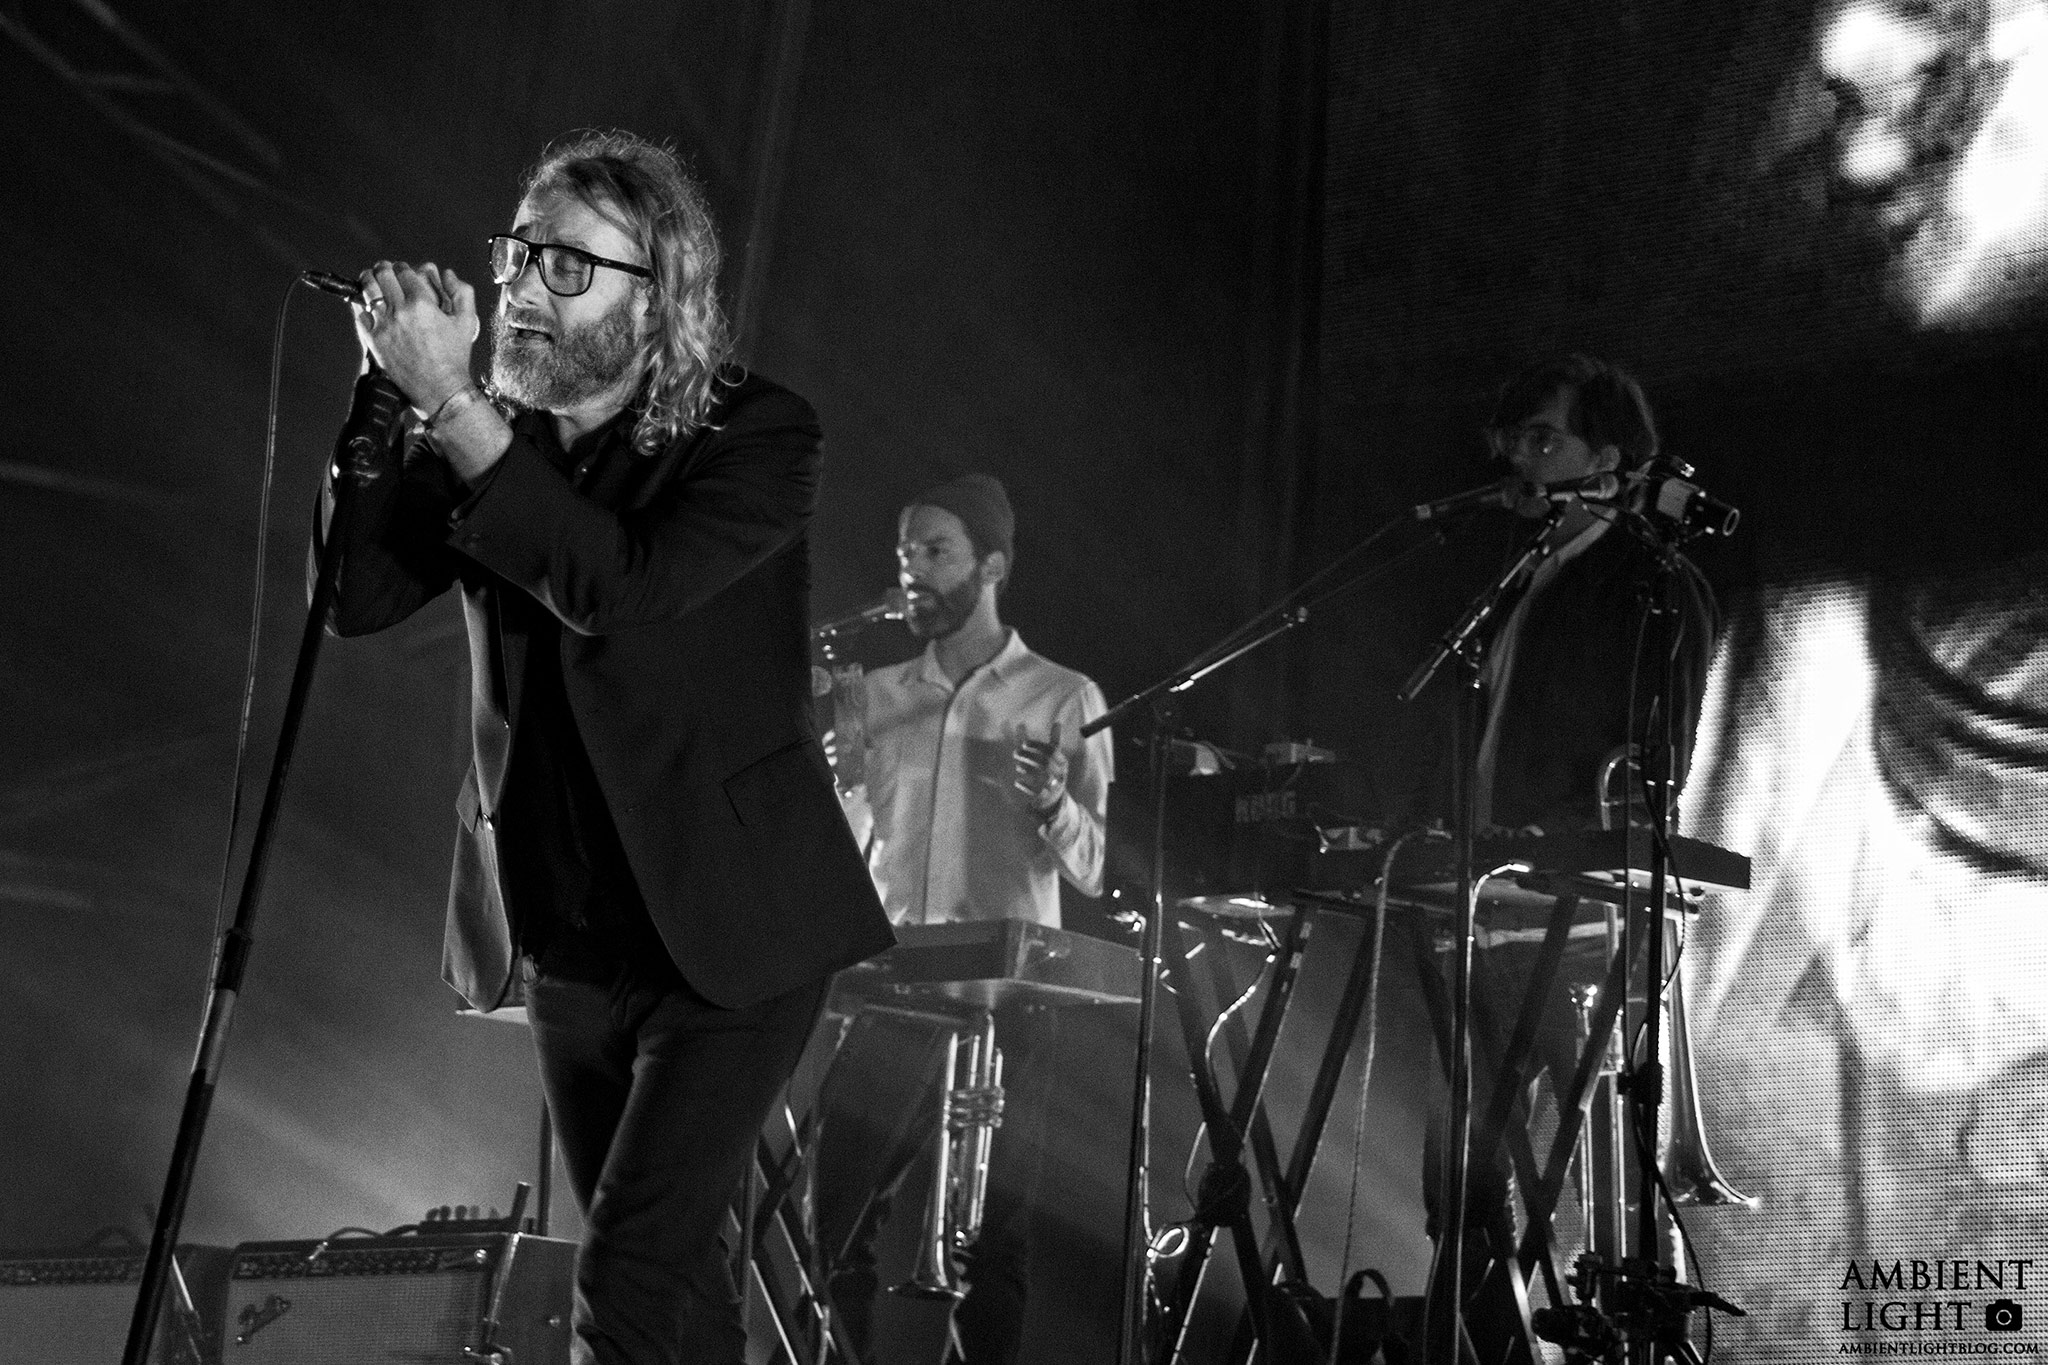 The National performing live at Auckland City Limits. Image by Doug Peters.